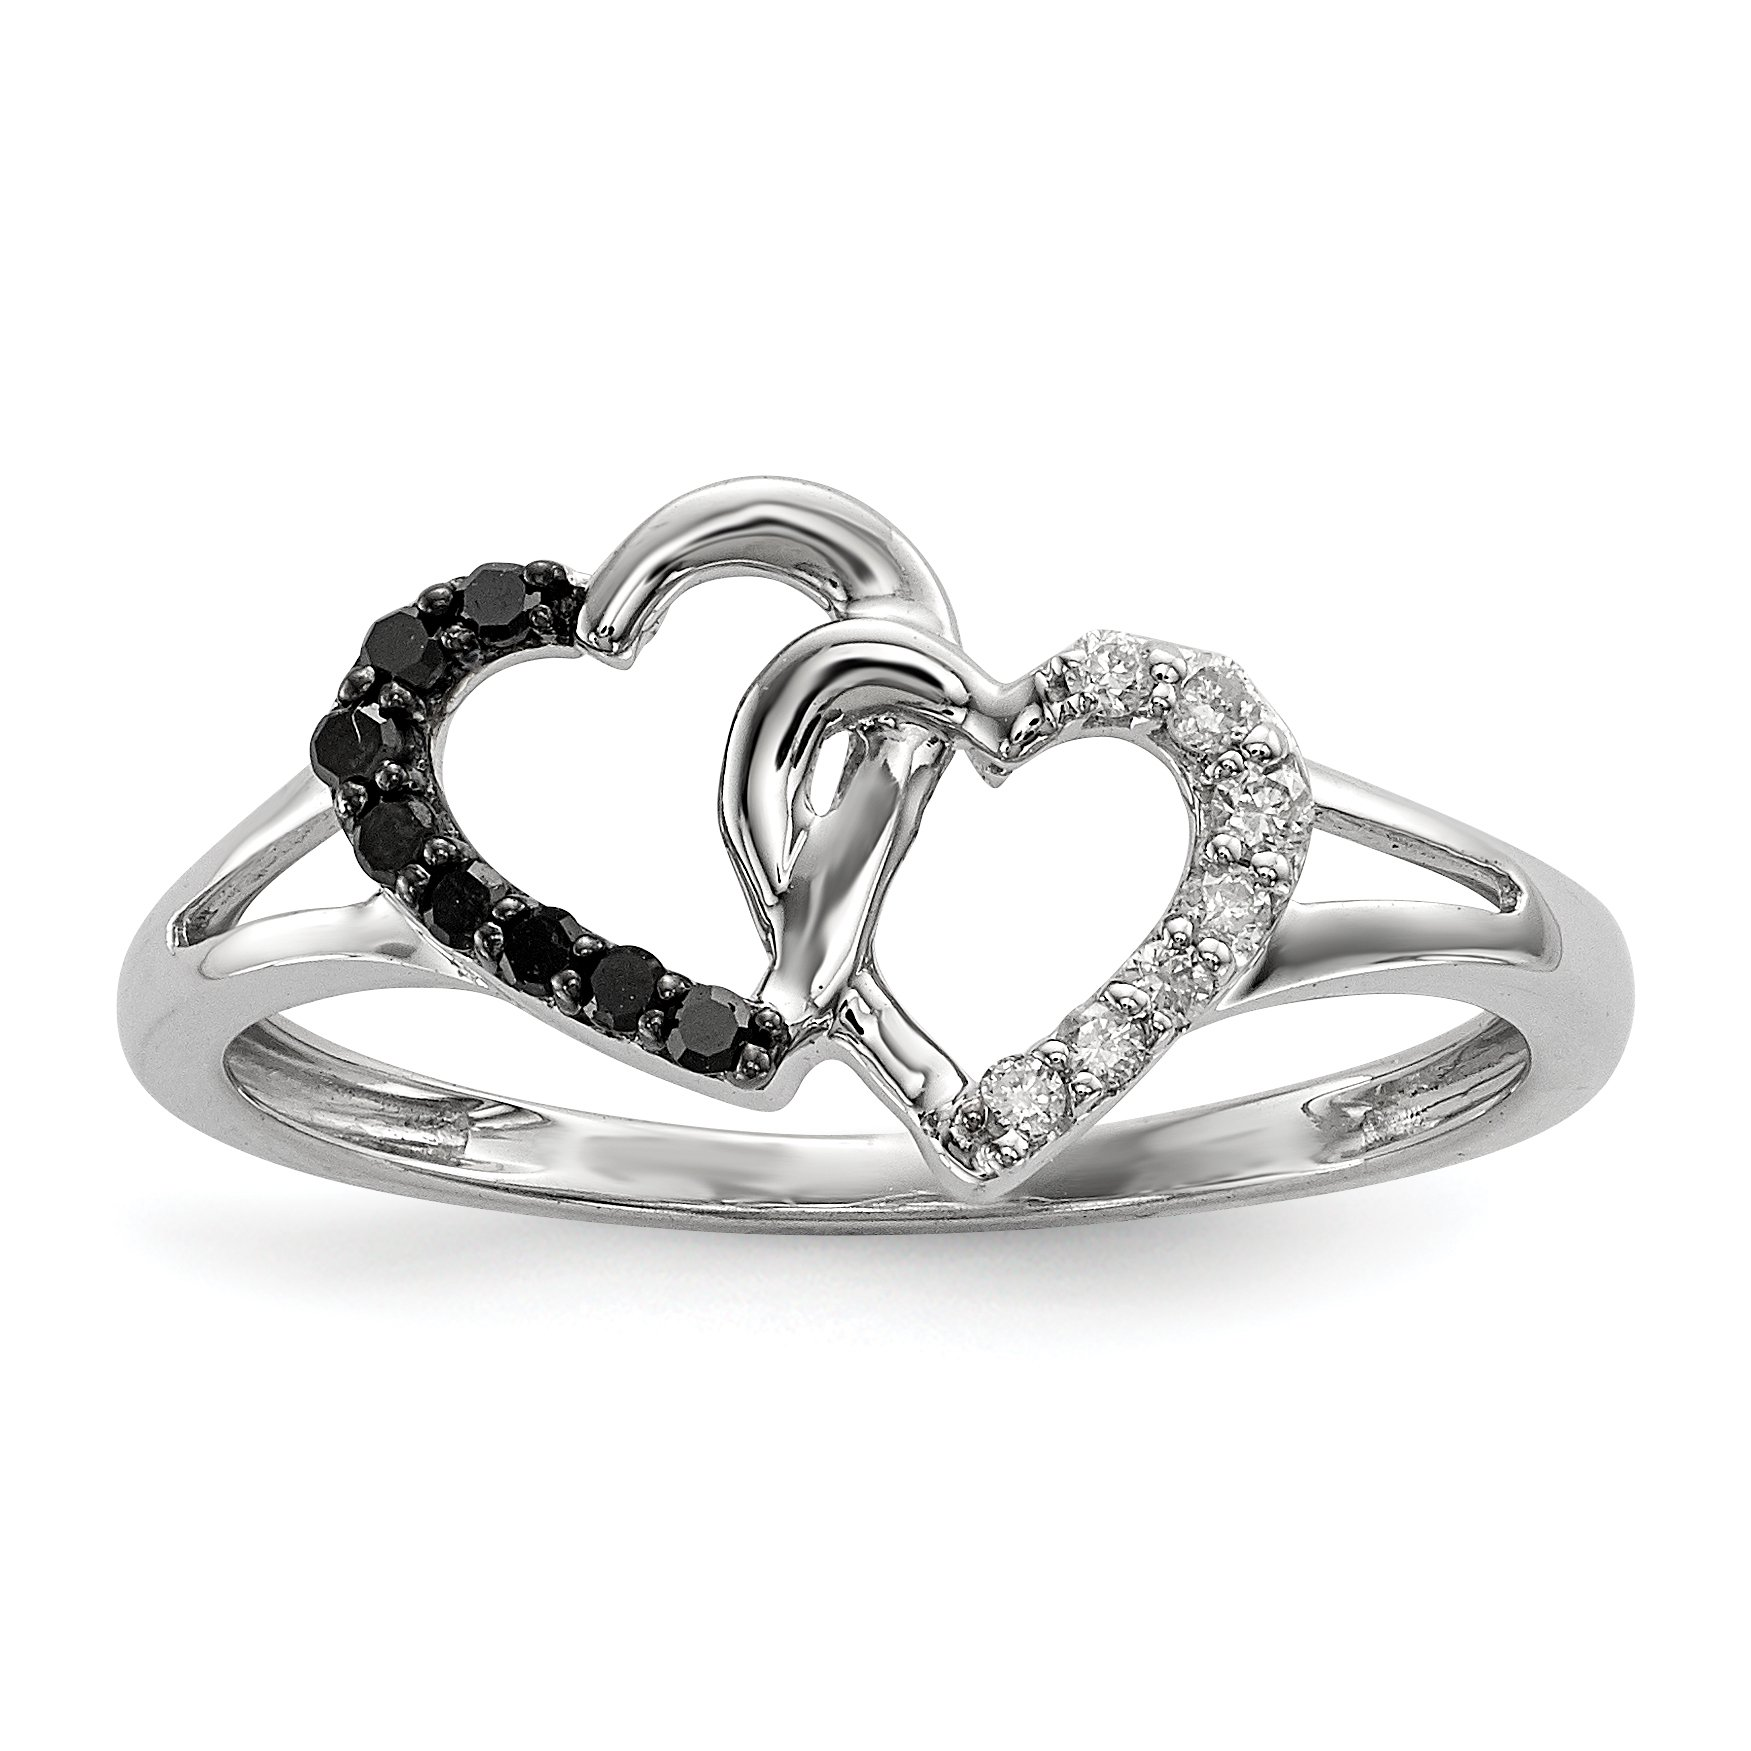 ICE CARATS 925 Sterling Silver Black White Diamond Double Heart Band Ring Size 8.00 S/love Fine Jewelry Gift Set For Women Heart